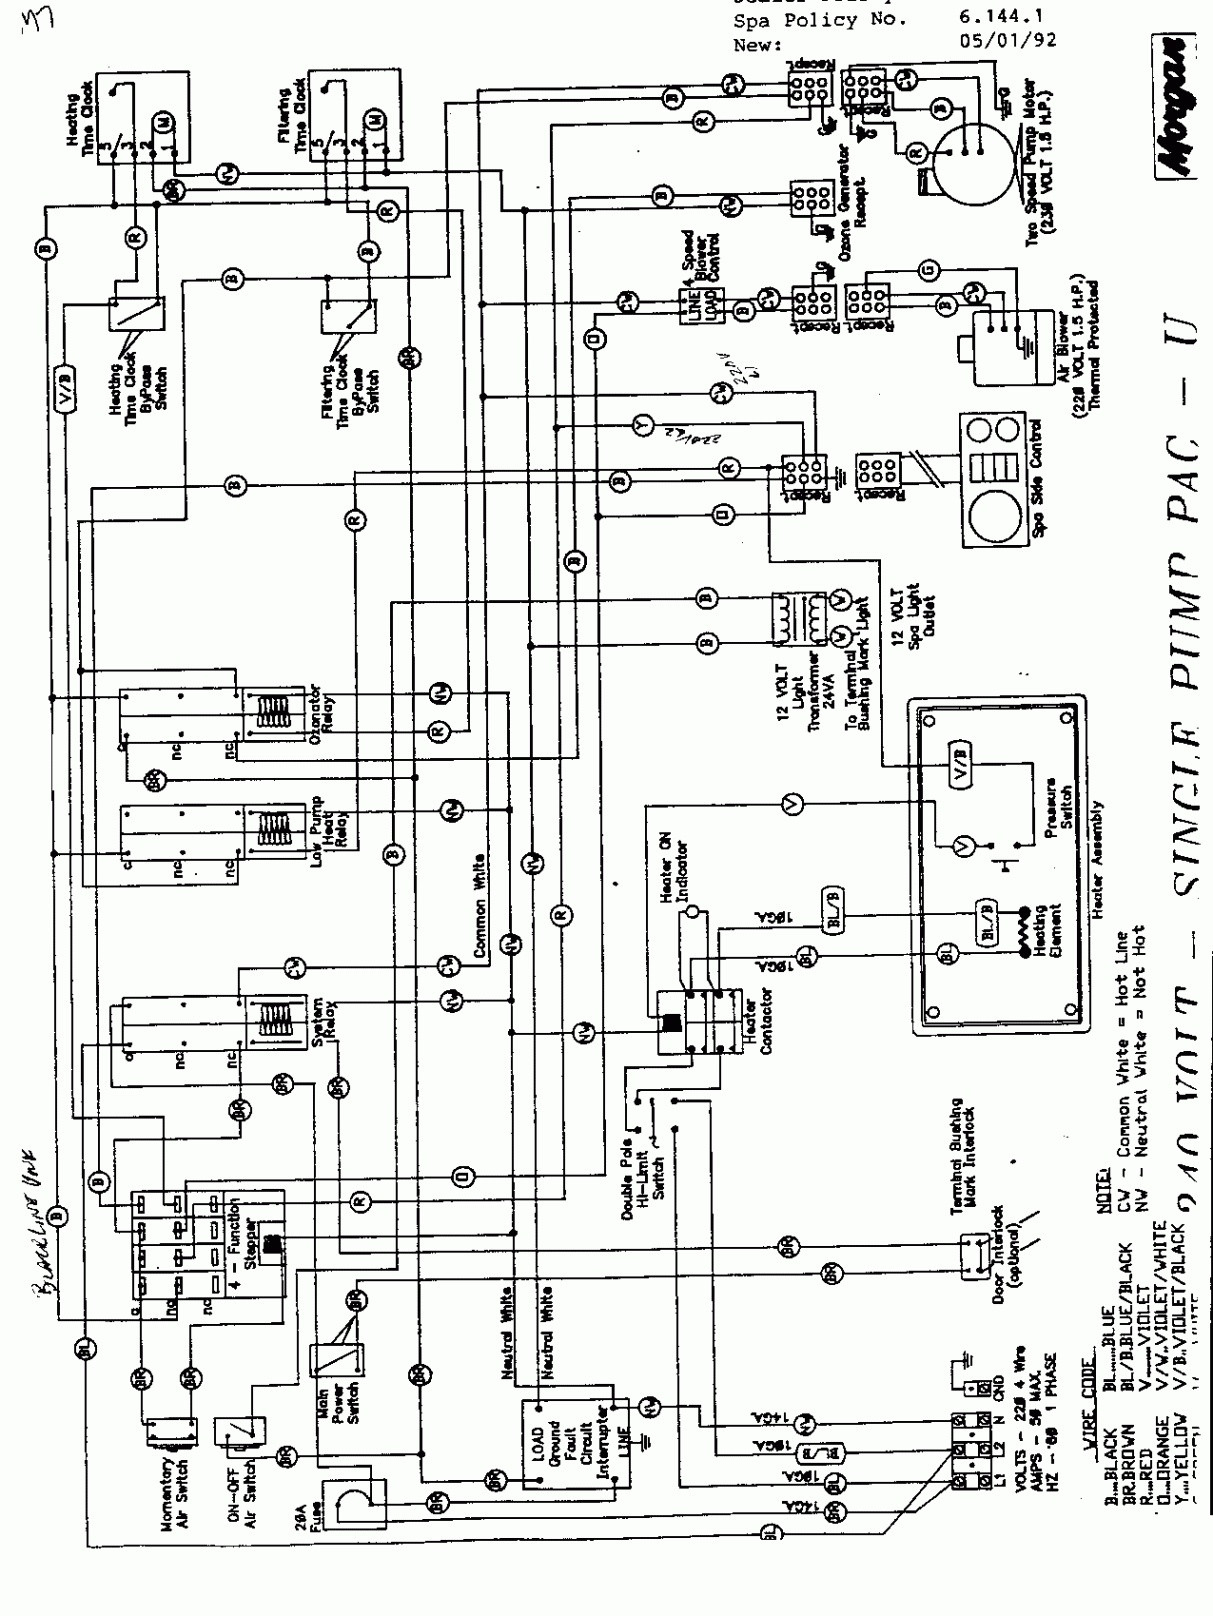 N Scale Wiring Diagram